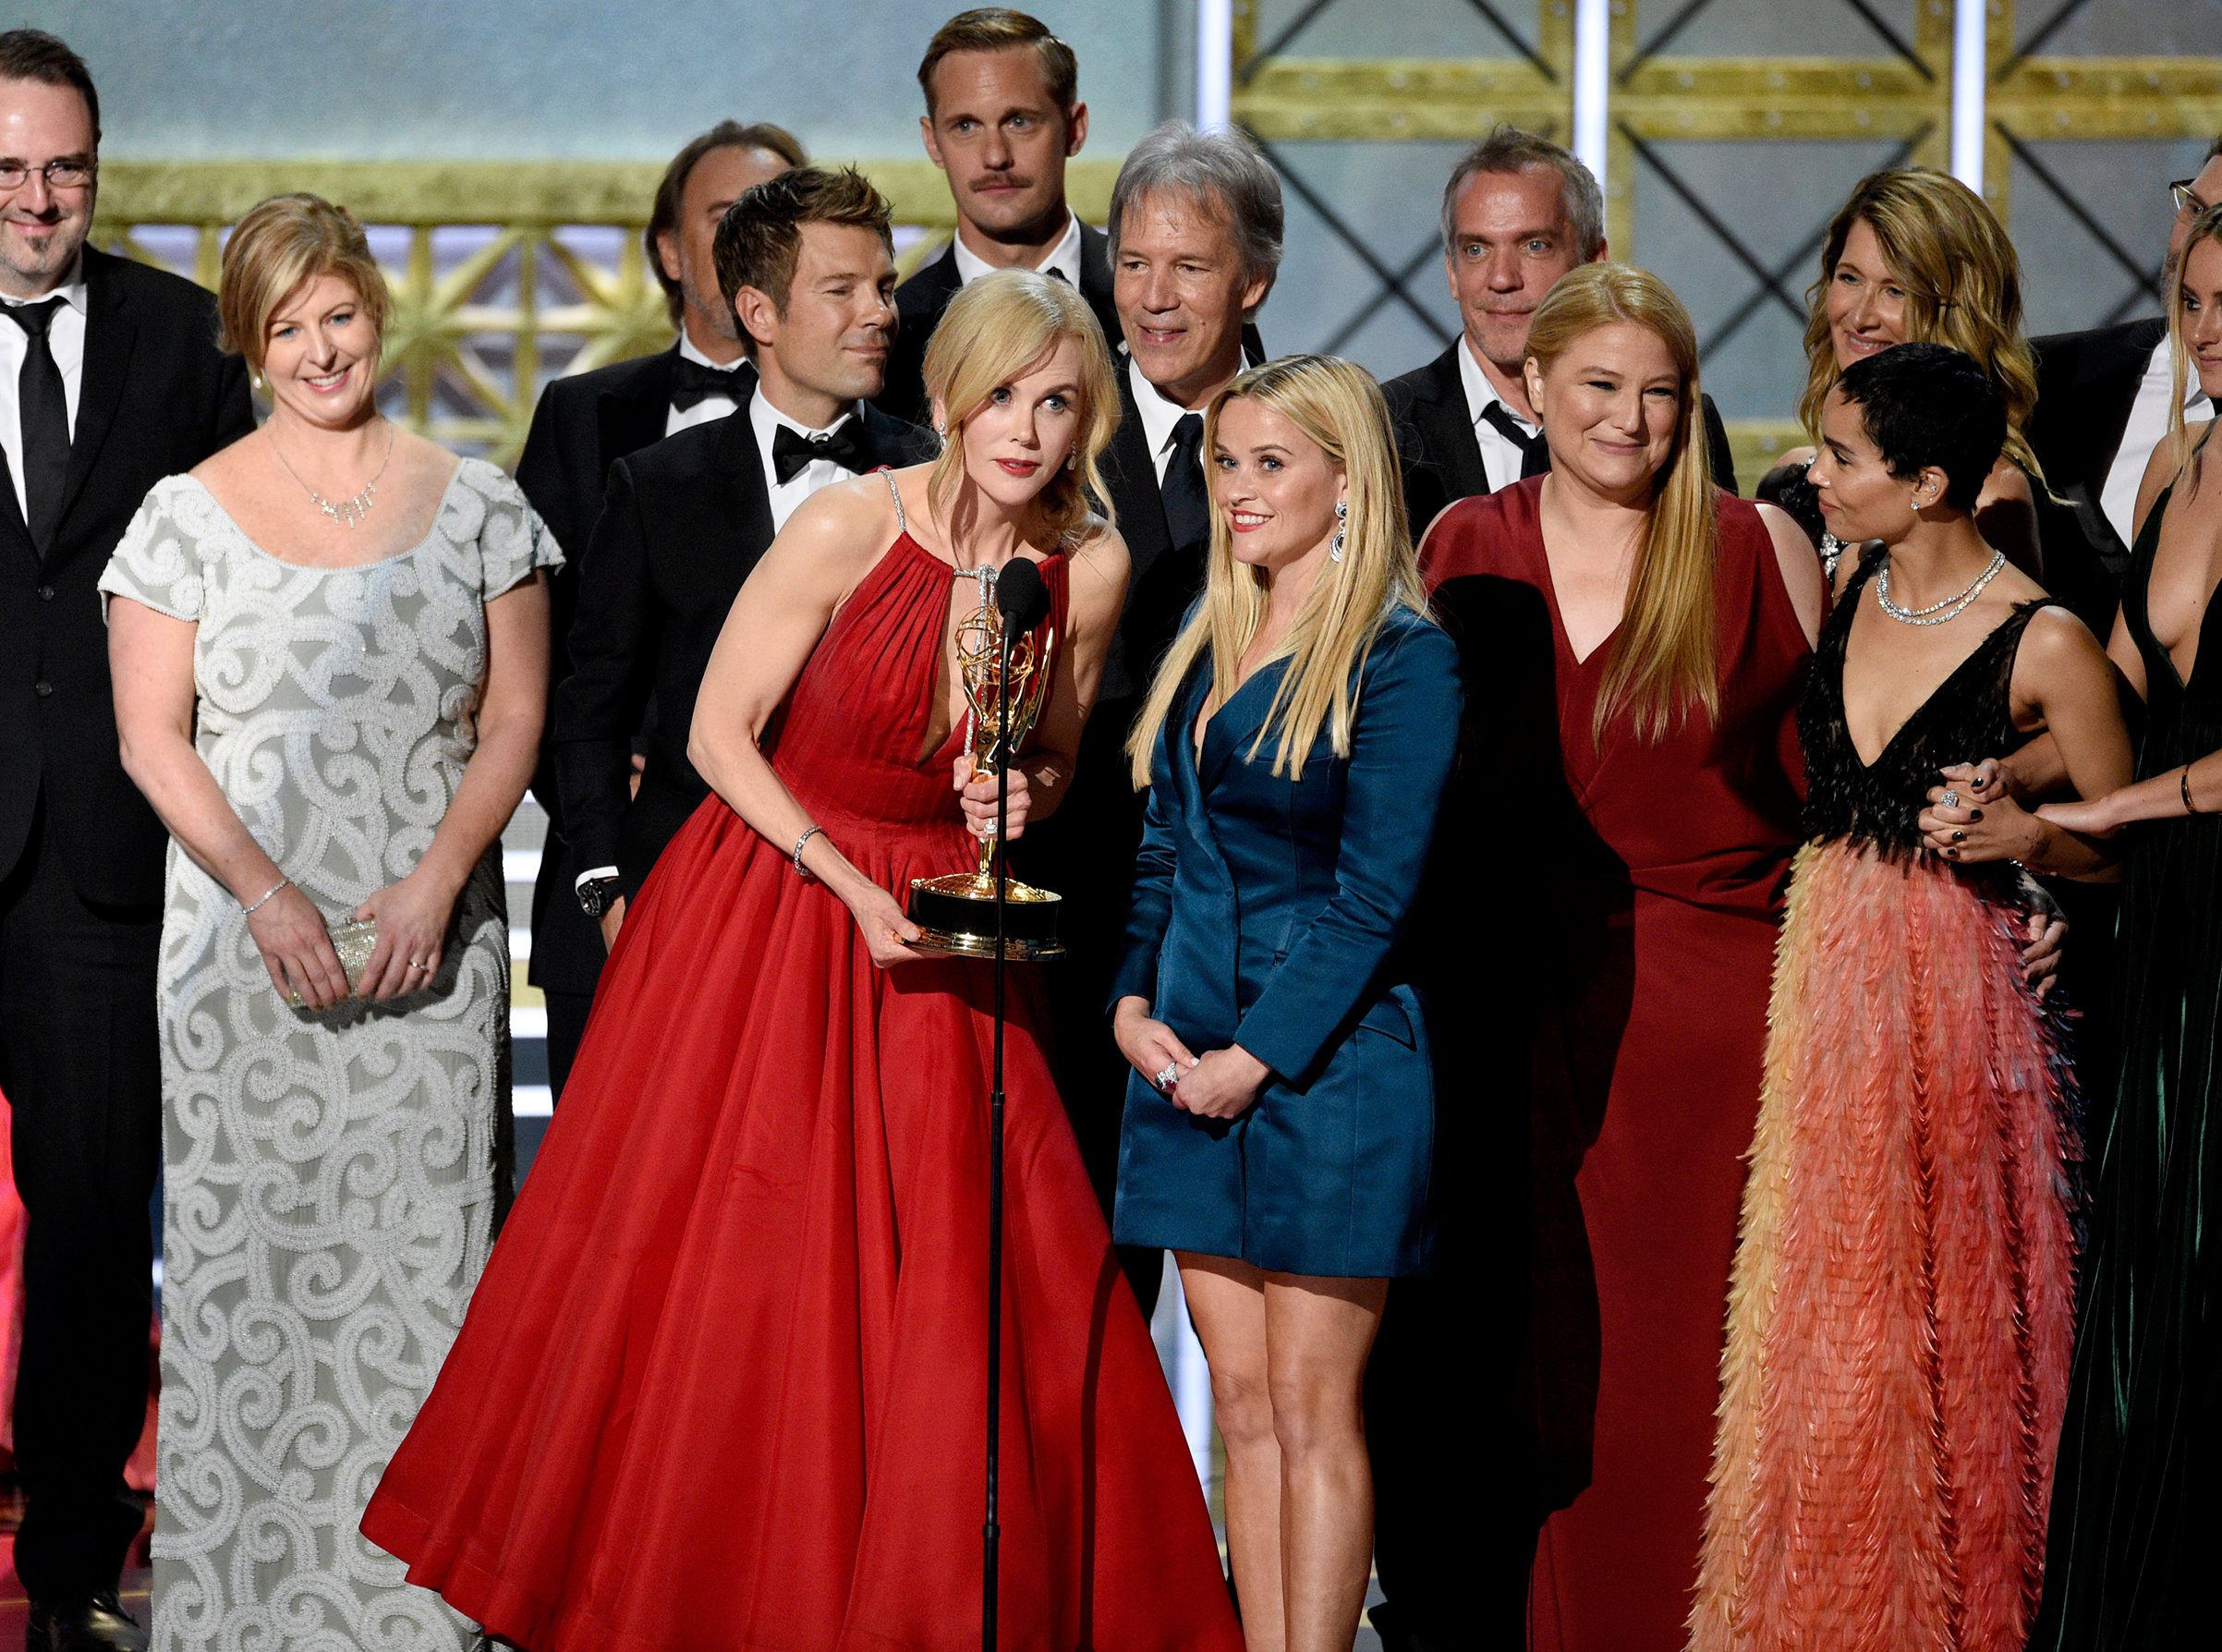 Nicole Kidman, center left, Reese Witherspoon, center right, and cast and crew accept the award for outstanding limited series for  Big Little Lies  at the 69th Primetime Emmy Awards on Sept. 17, 2017, at the Microsoft Theater in Los Angeles.